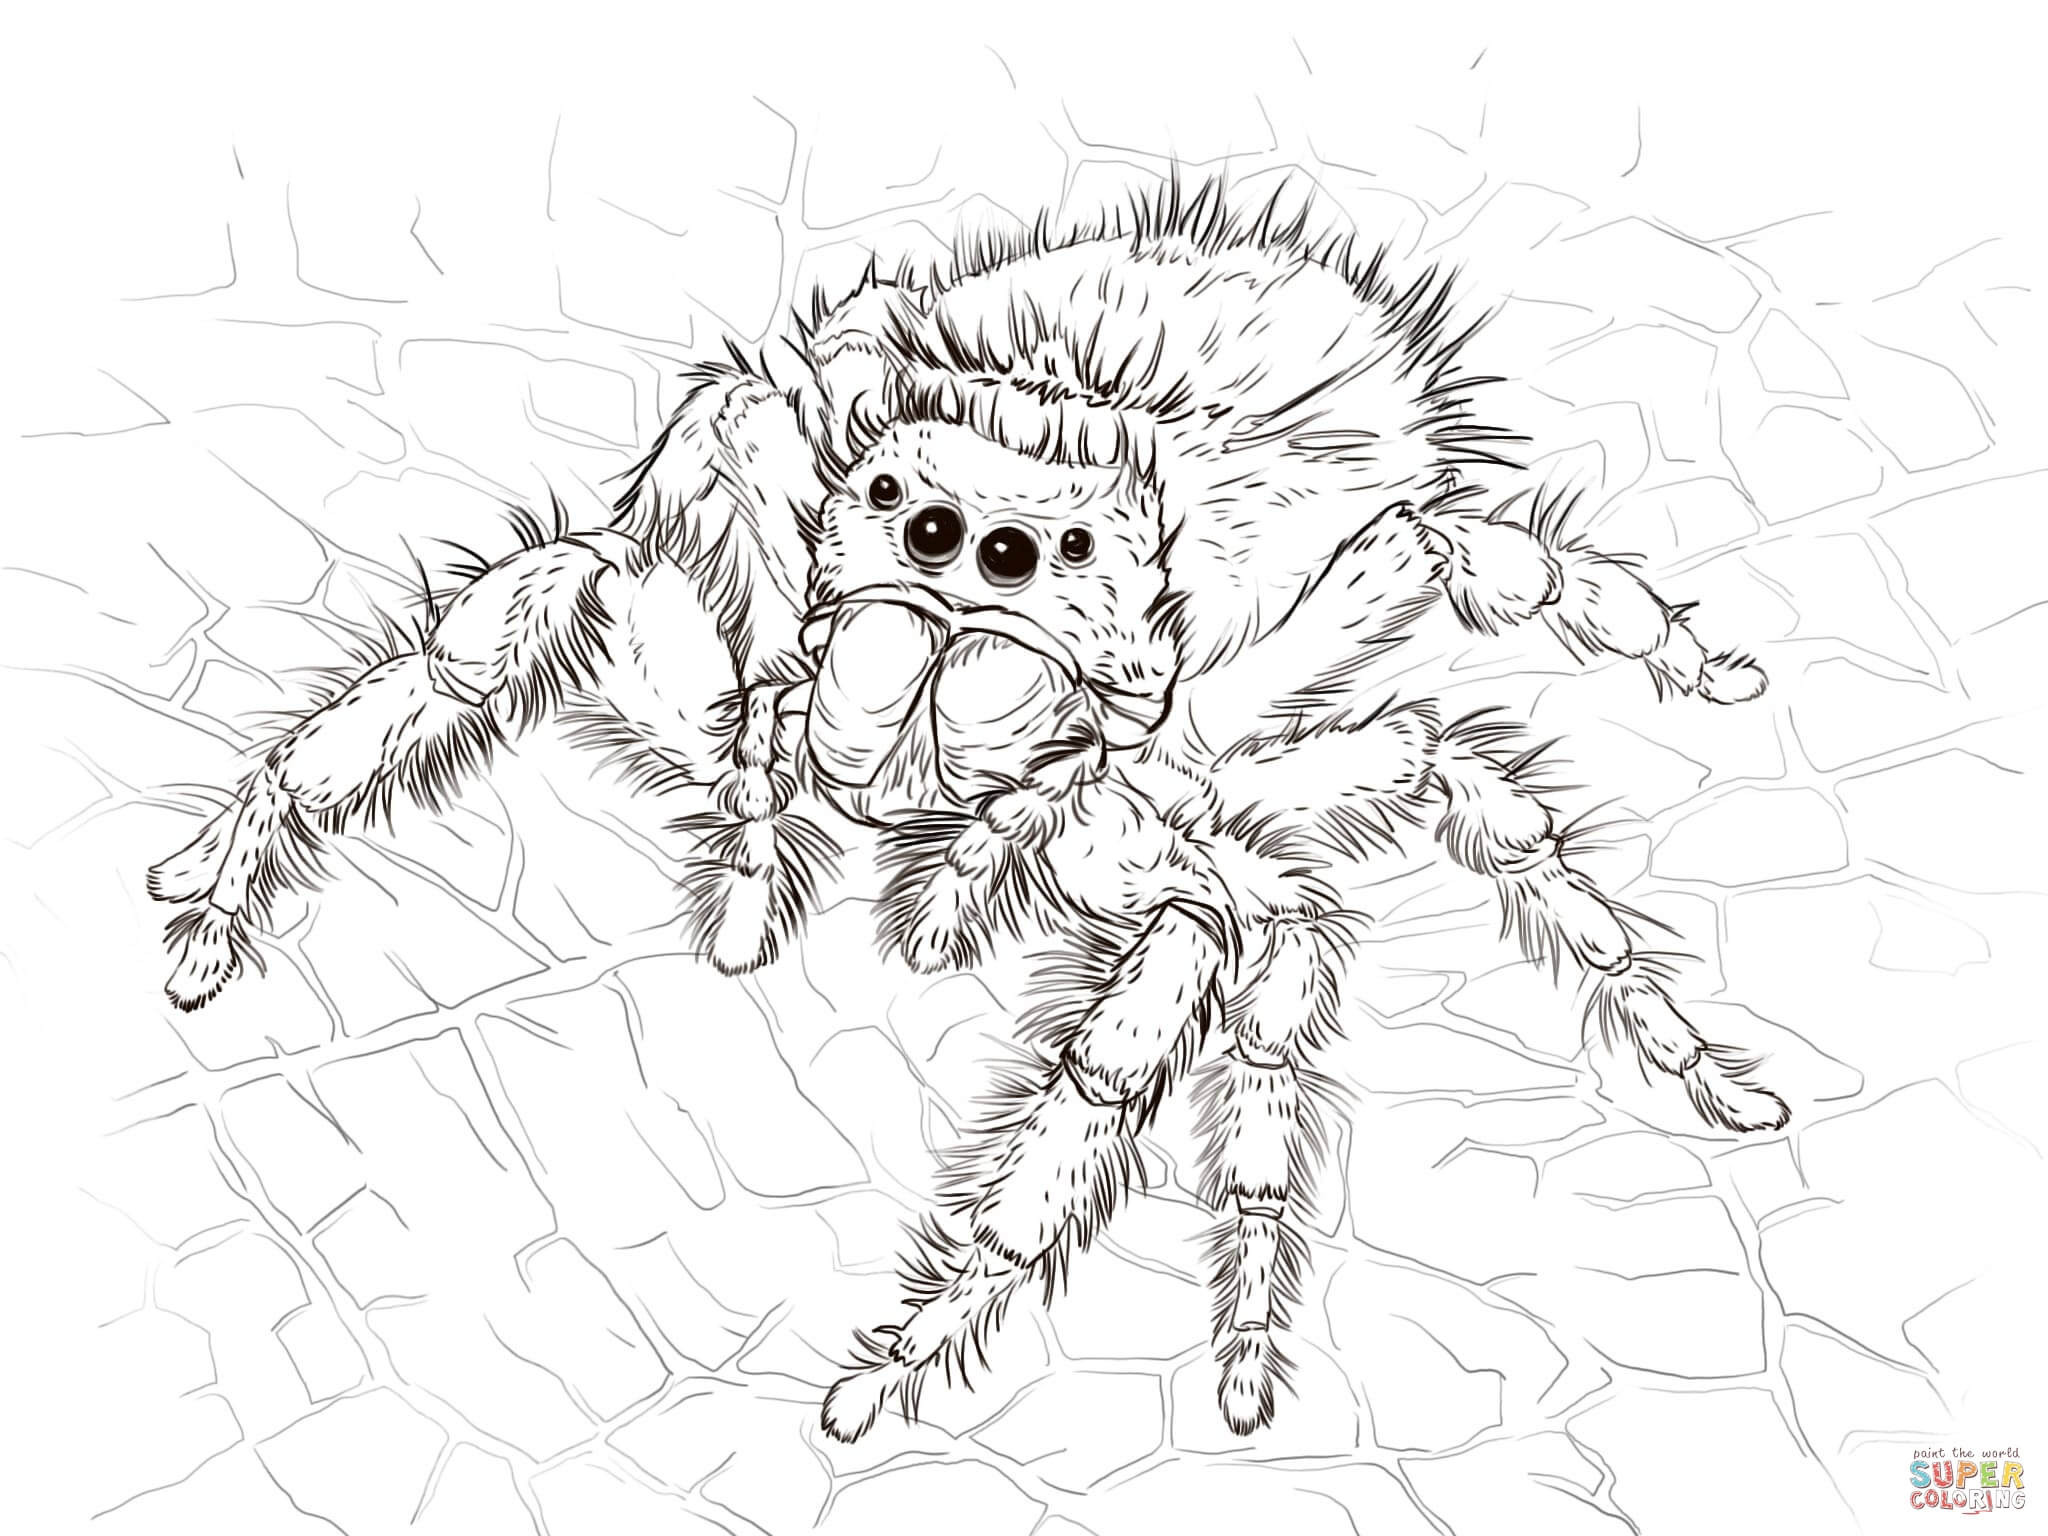 Best ideas about Spider Printable Coloring Pages . Save or Pin Daring Jumping Spider coloring page Now.